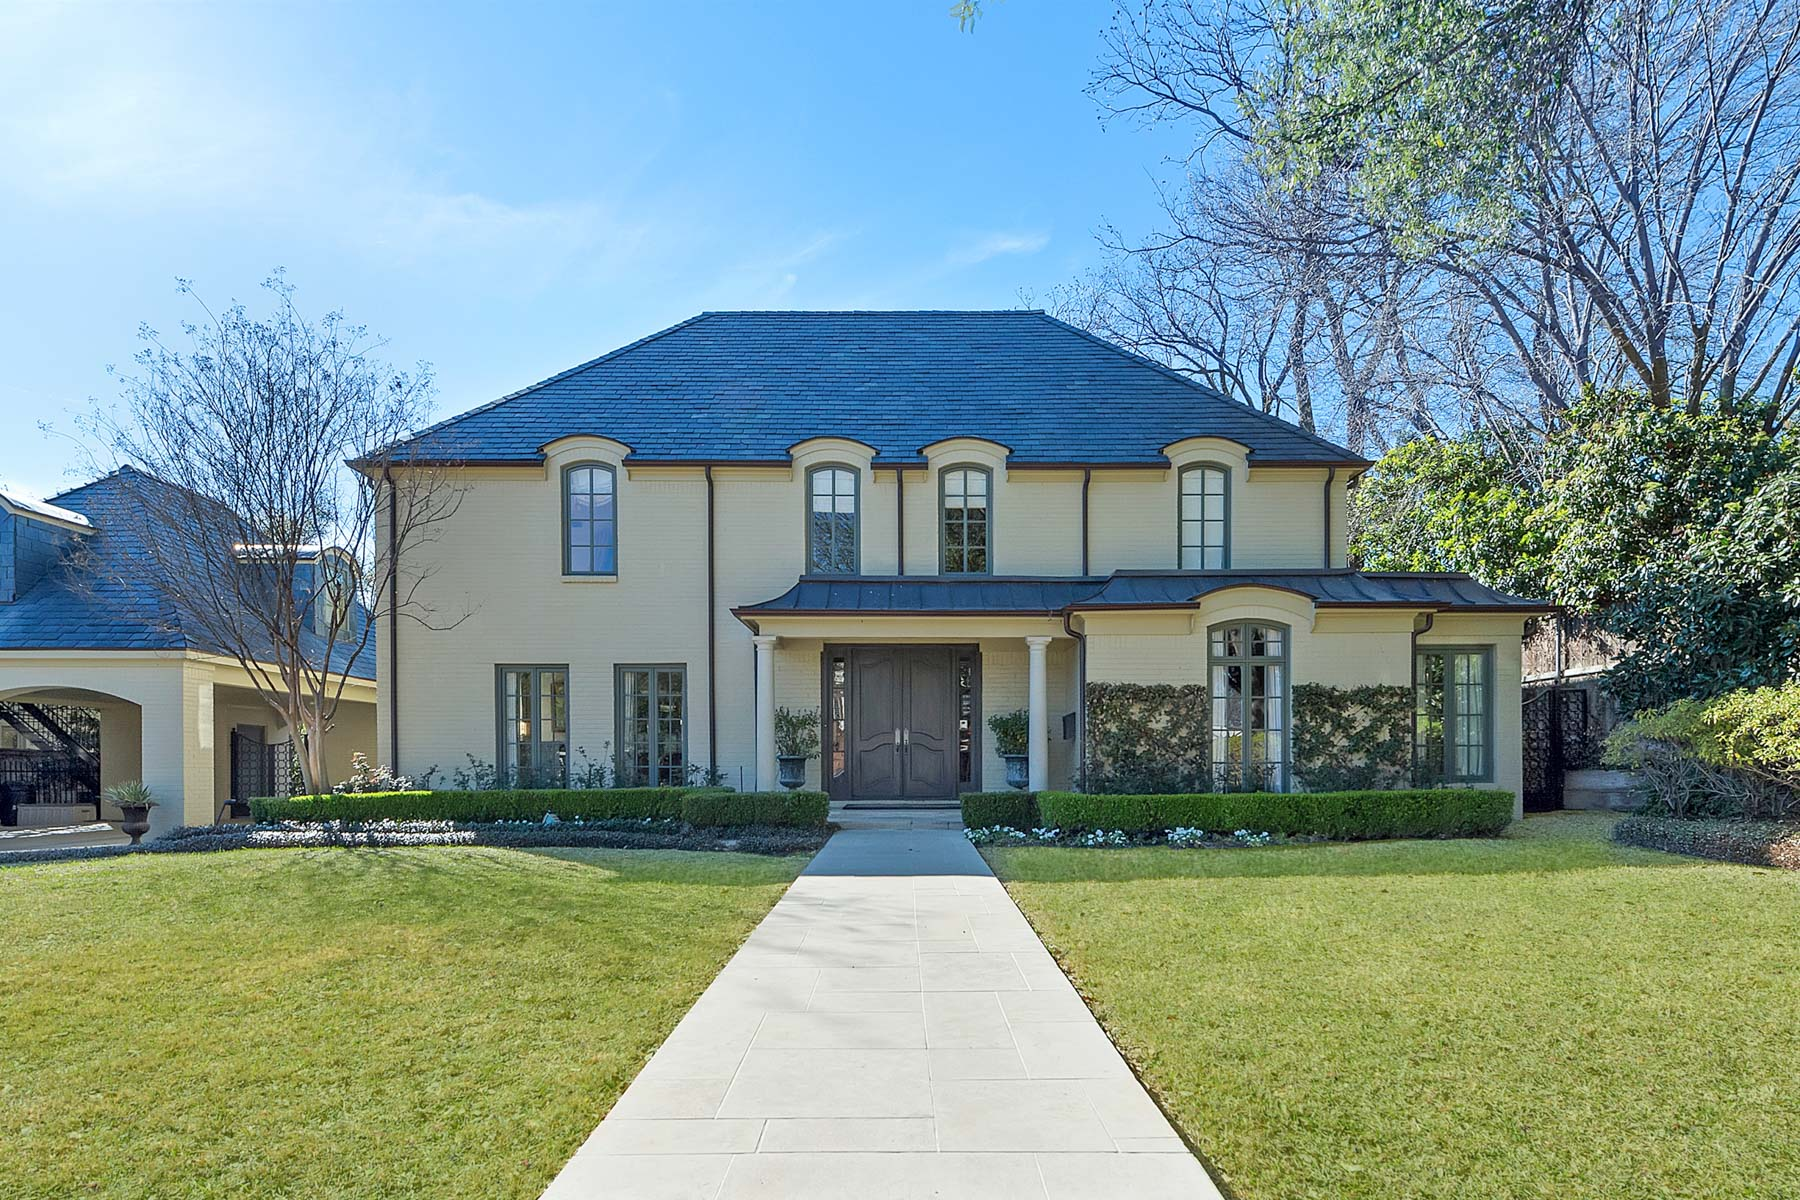 Villa per Vendita alle ore 1410 Washington Terrace, Fort Worth Fort Worth, Texas, 76107 Stati Uniti